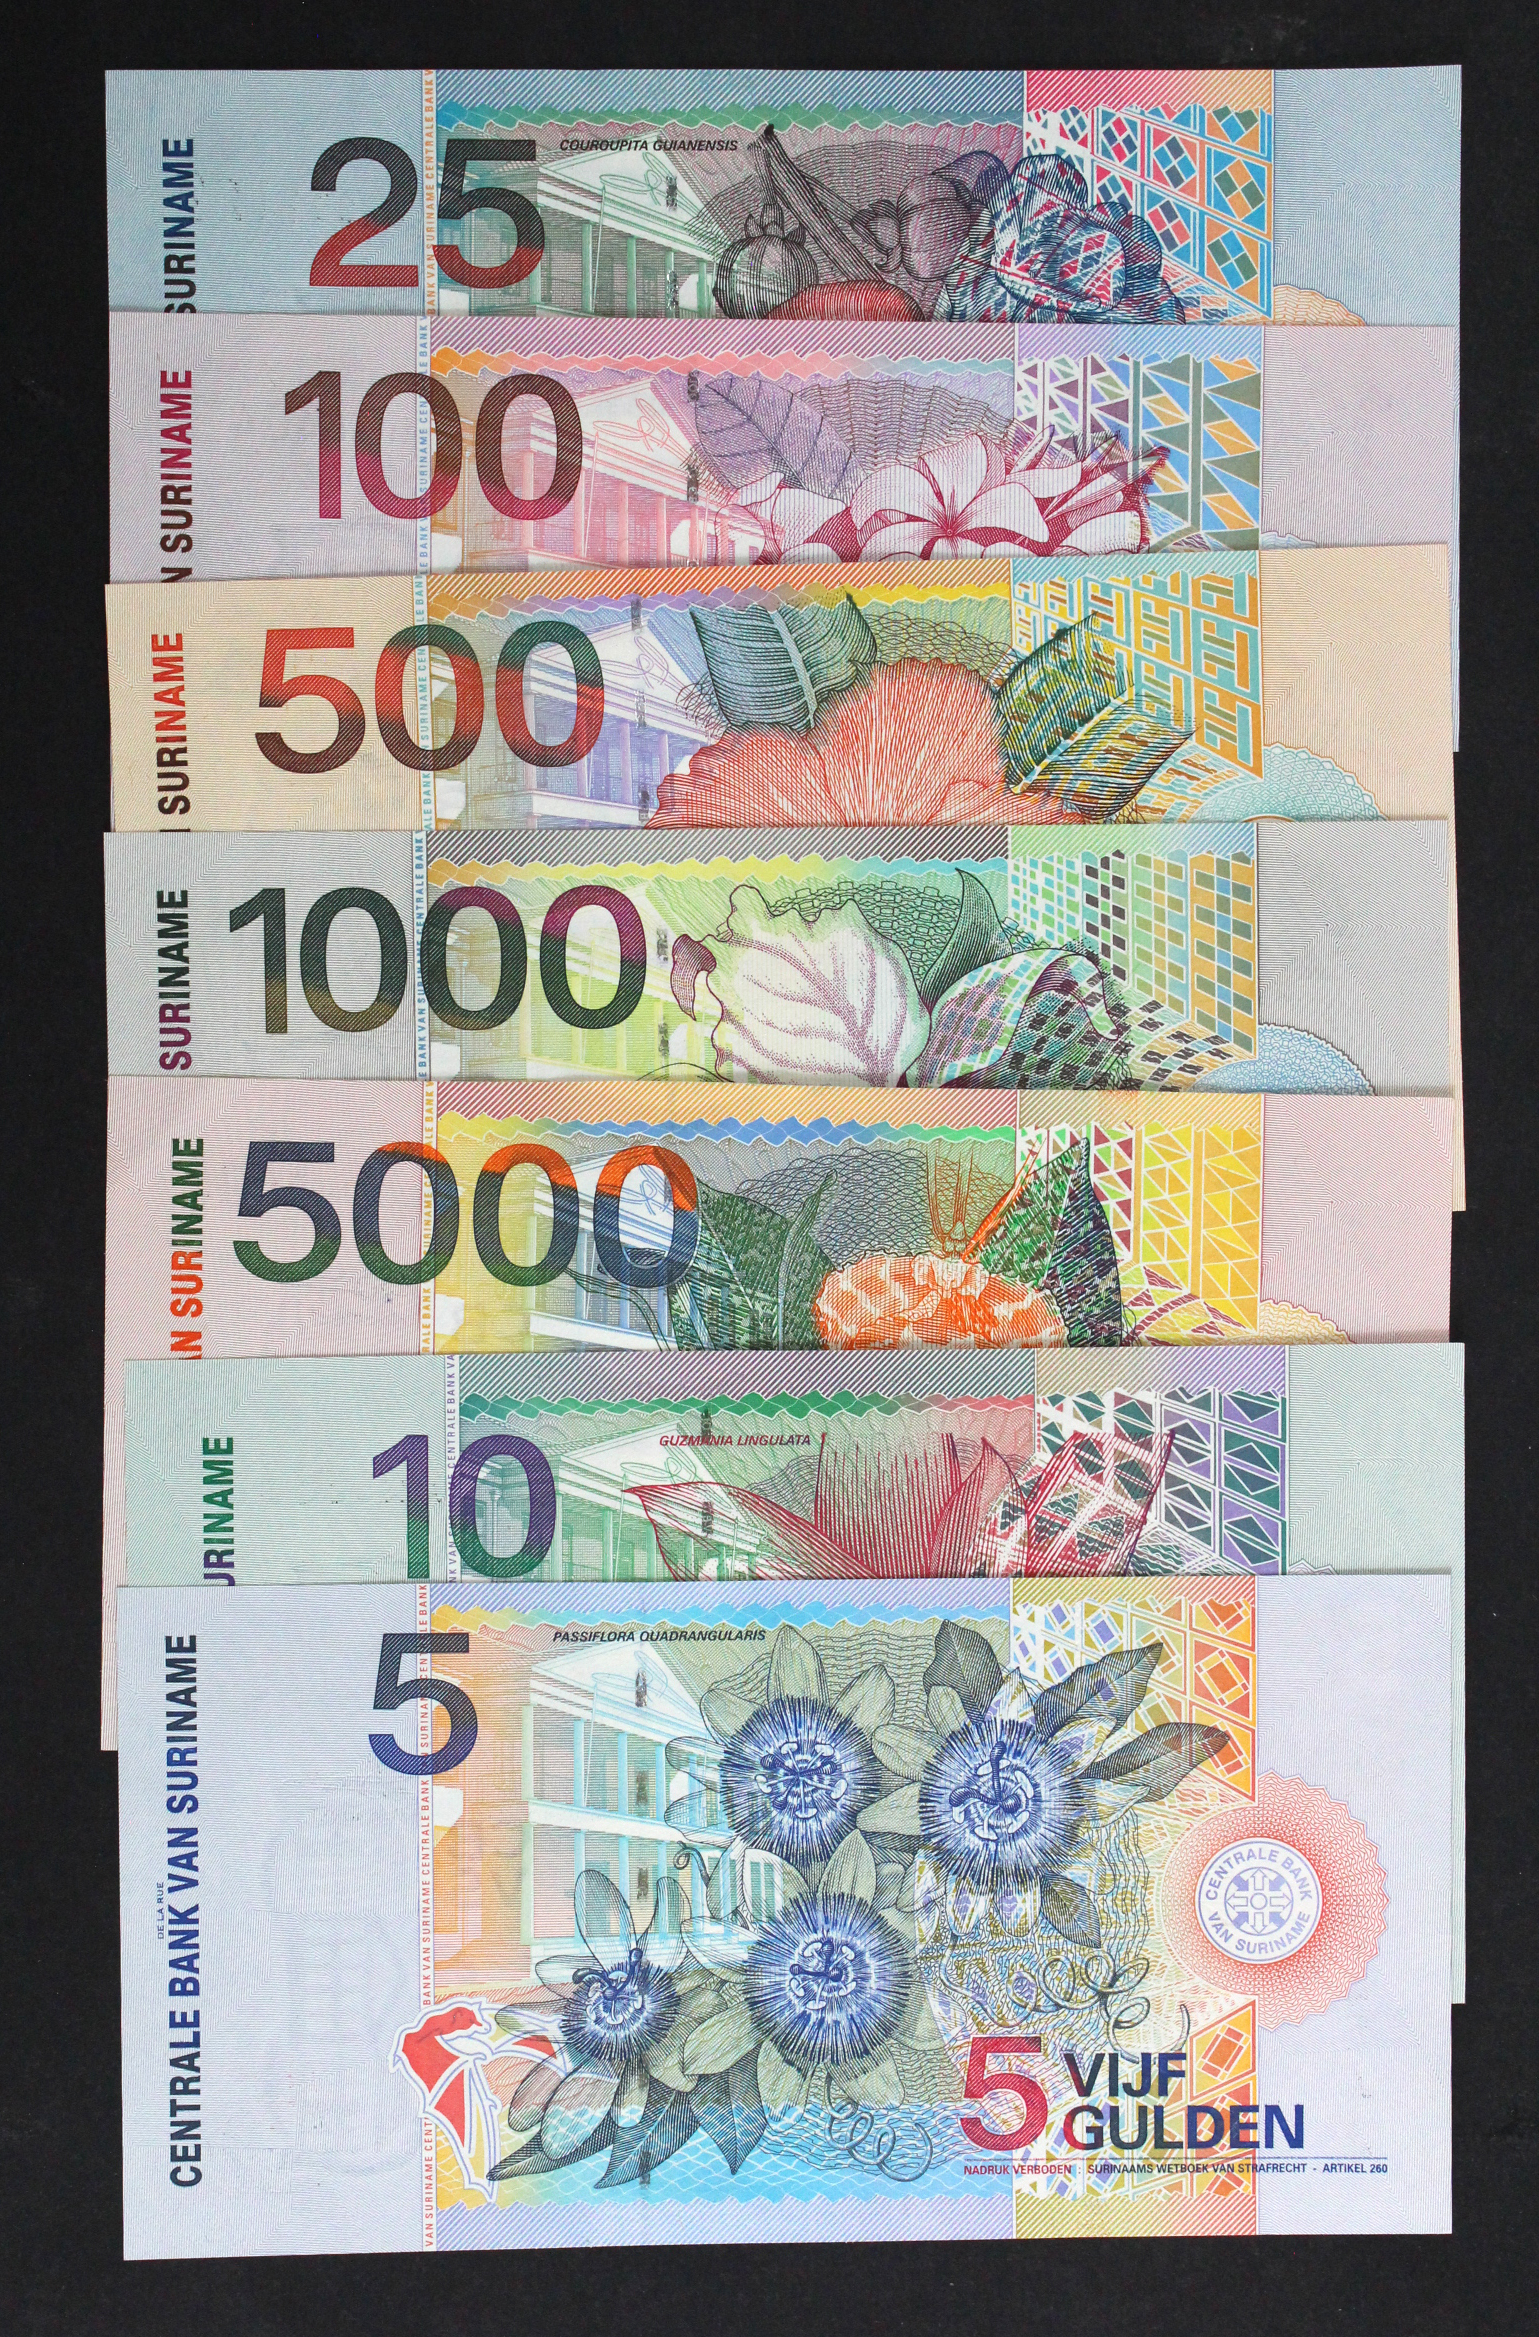 Suriname (7) 5000, 1000, 500, 100, 25, 10 & 5 Gulden dated 1st January 2000 (TBB B531 - B537,